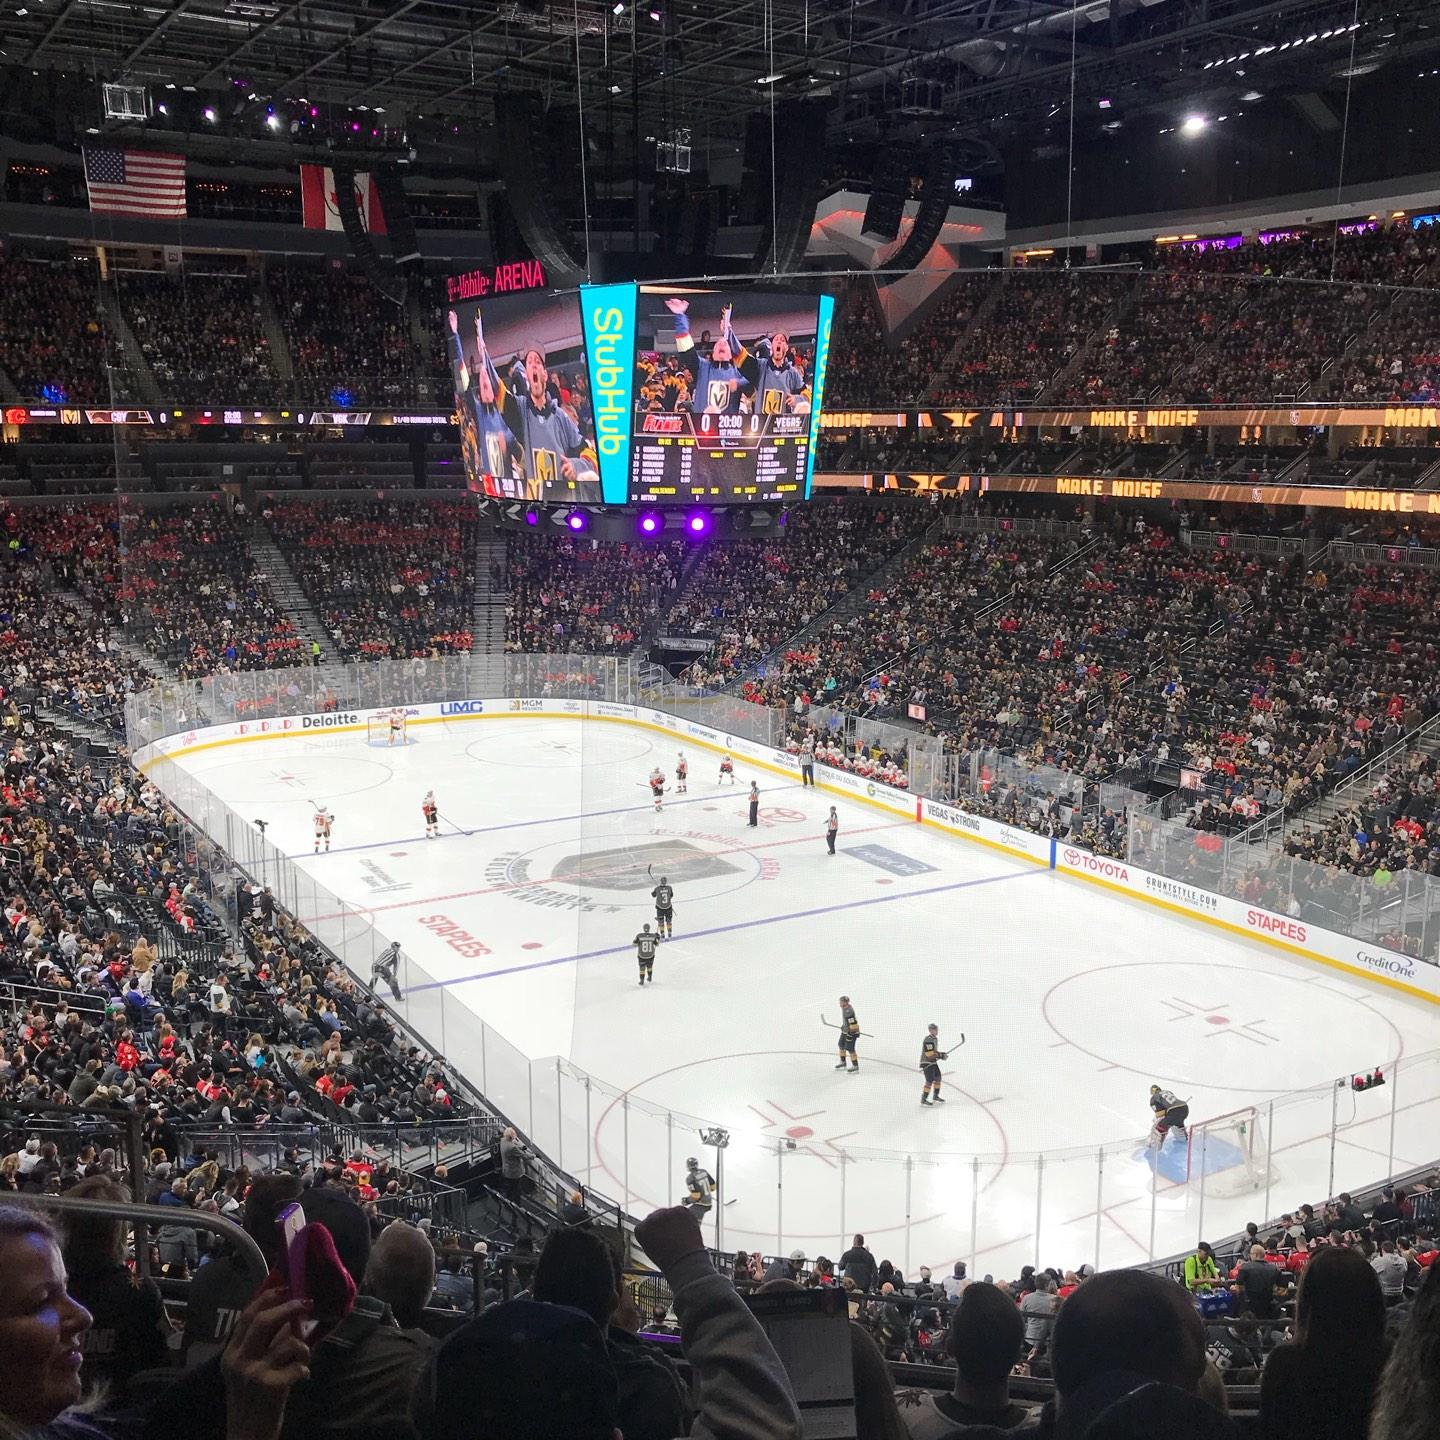 T-Mobile Arena Section 118 Row F Seat 7